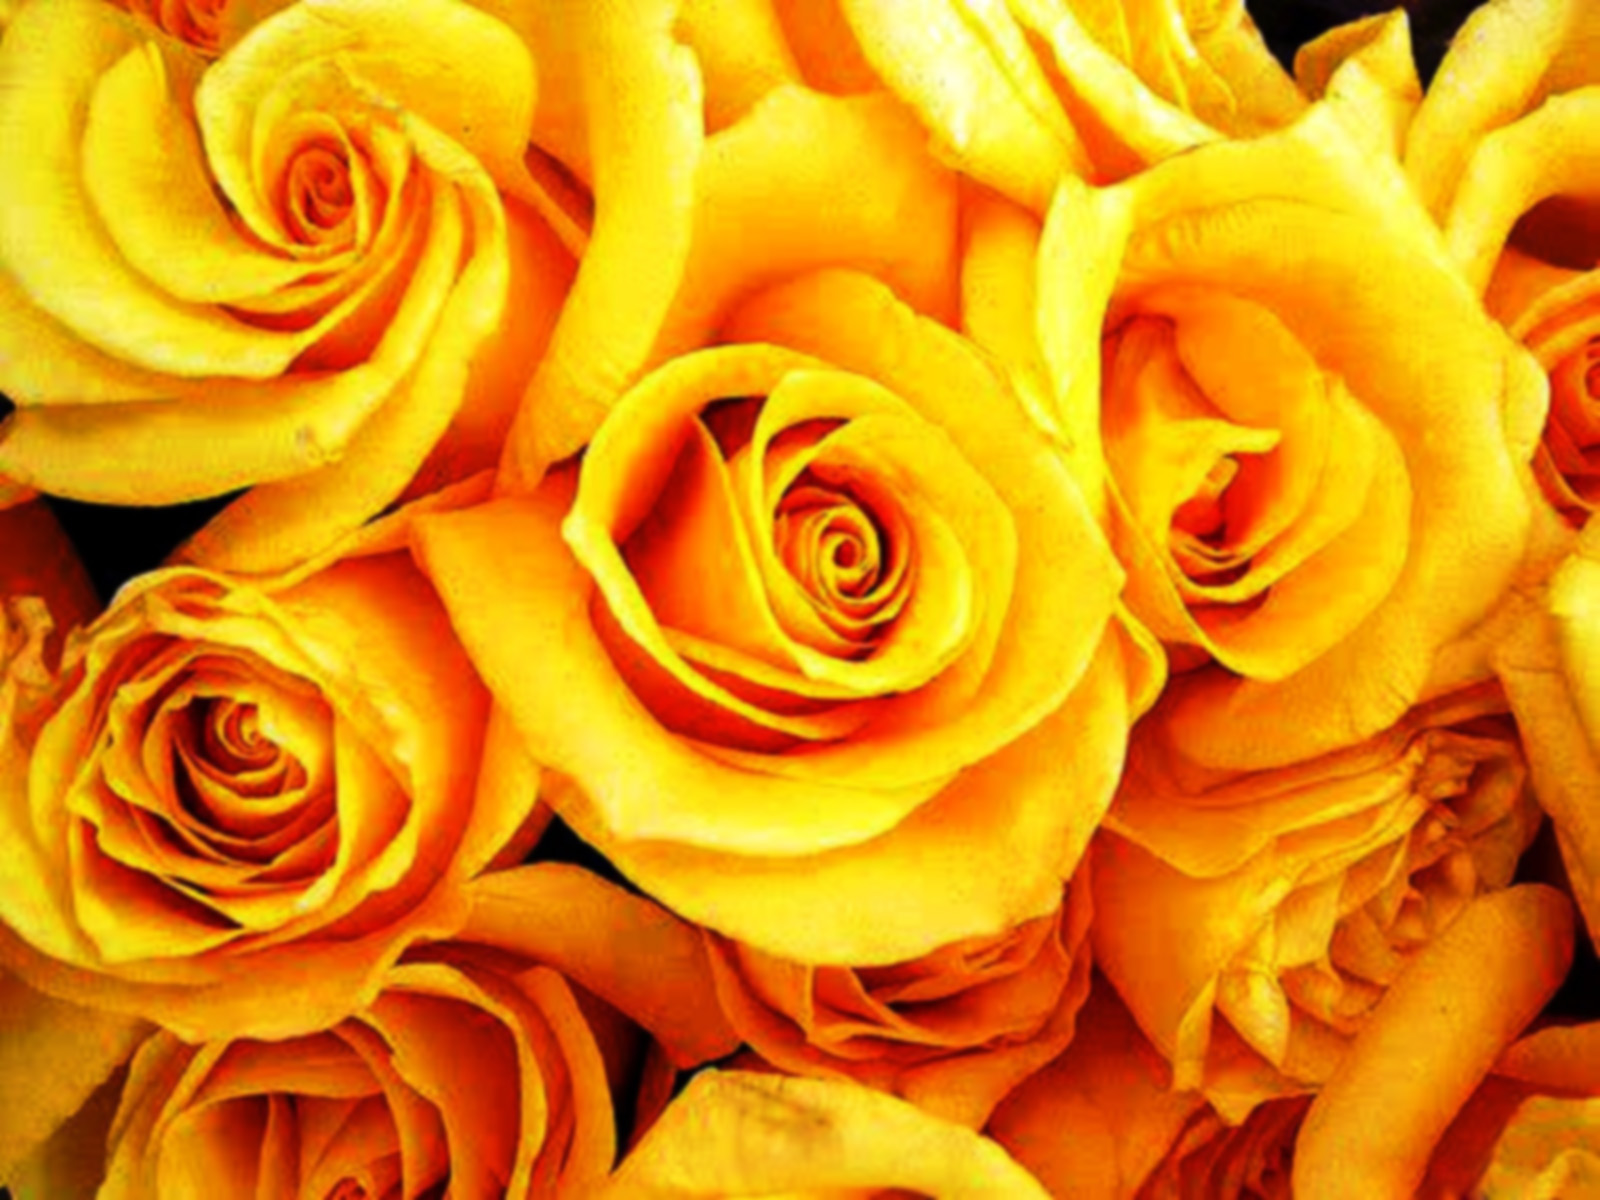 Yellow roses 9 high resolution wallpaper hdflowerwallpaper yellow roses free wallpaper mightylinksfo Image collections